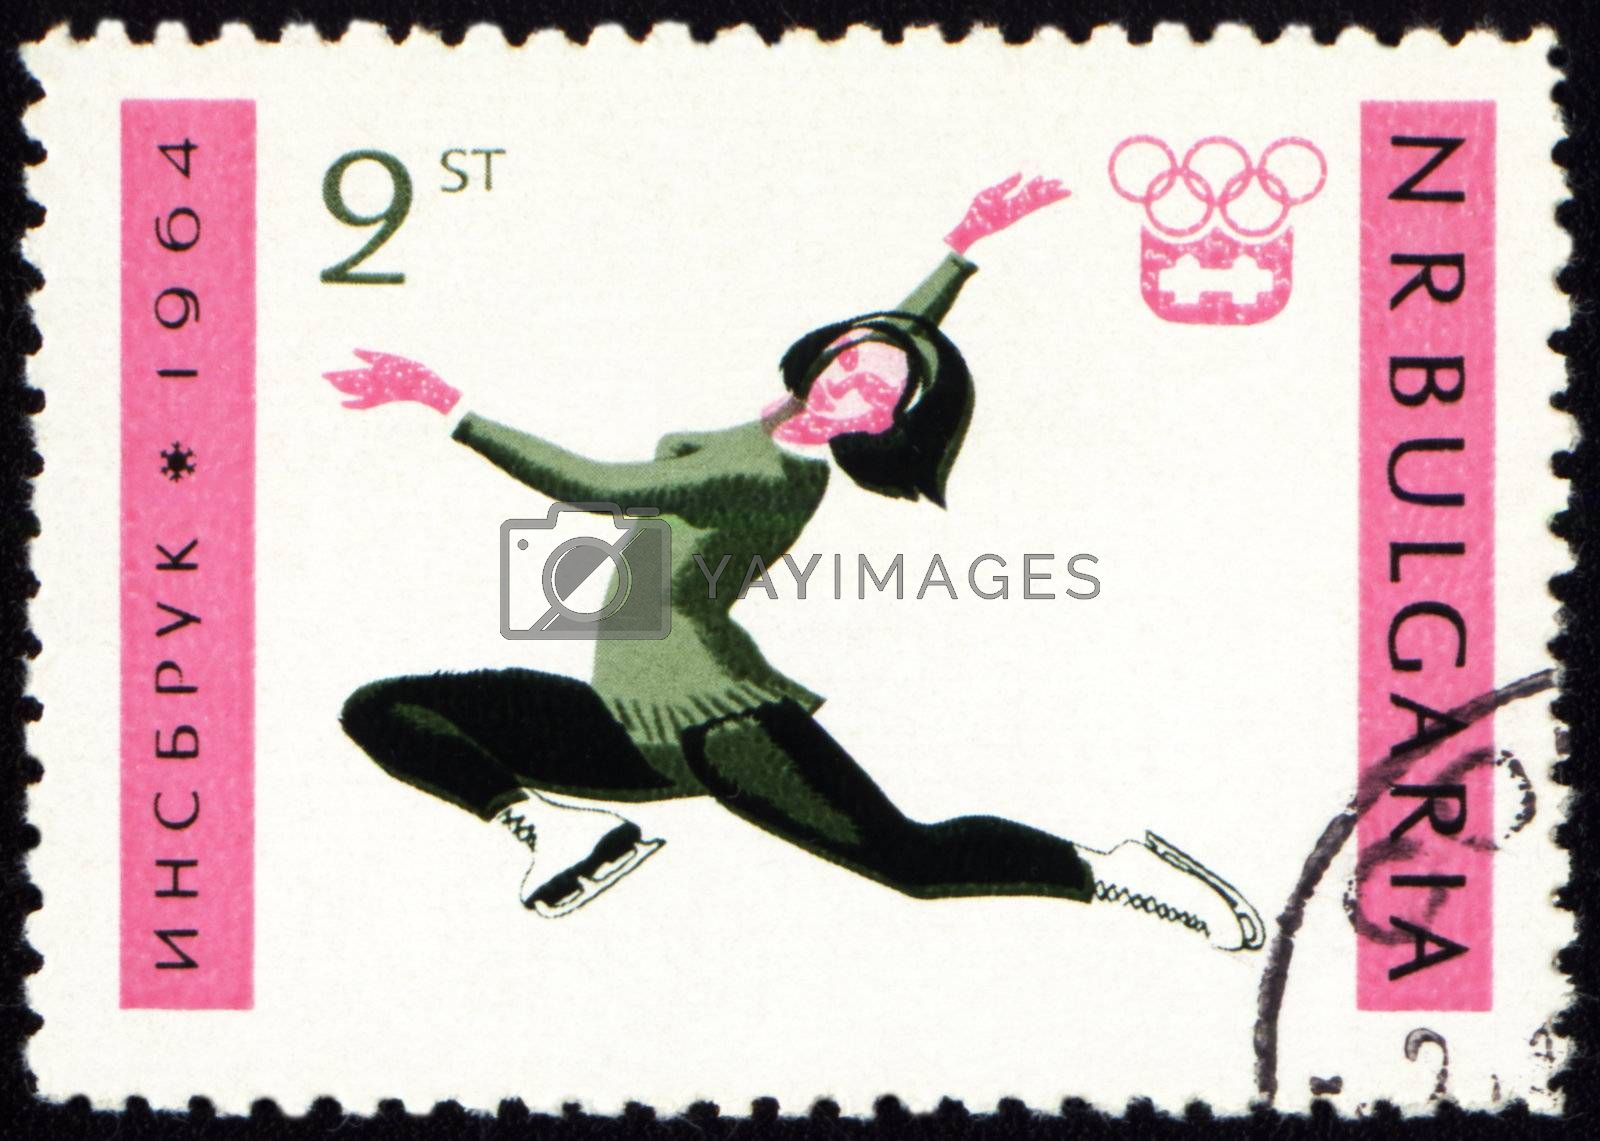 BULGARIA - CIRCA 1964: A post stamp printed in Bulgaria shows figure skating, dedicated to the Olympic Winter Games in Innsbruck, series, circa 1964